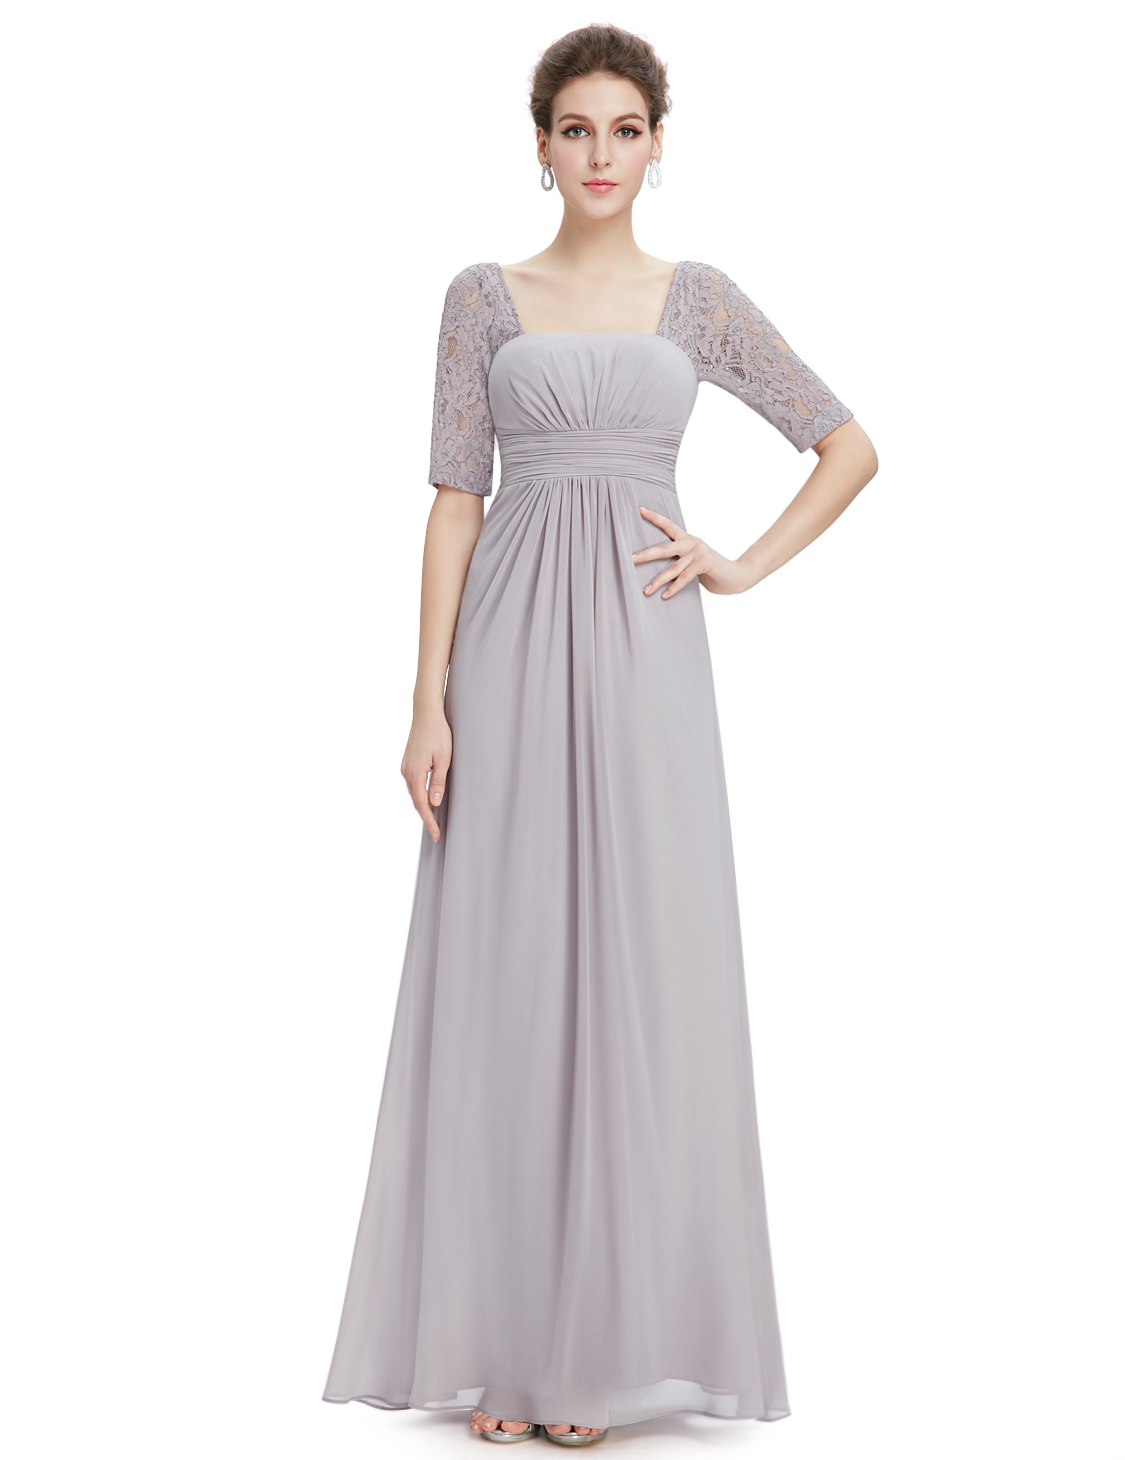 4254cdd3ca UK Ever-Pretty Gray Long Bridesmaid Dresses Lace Party Evening ...